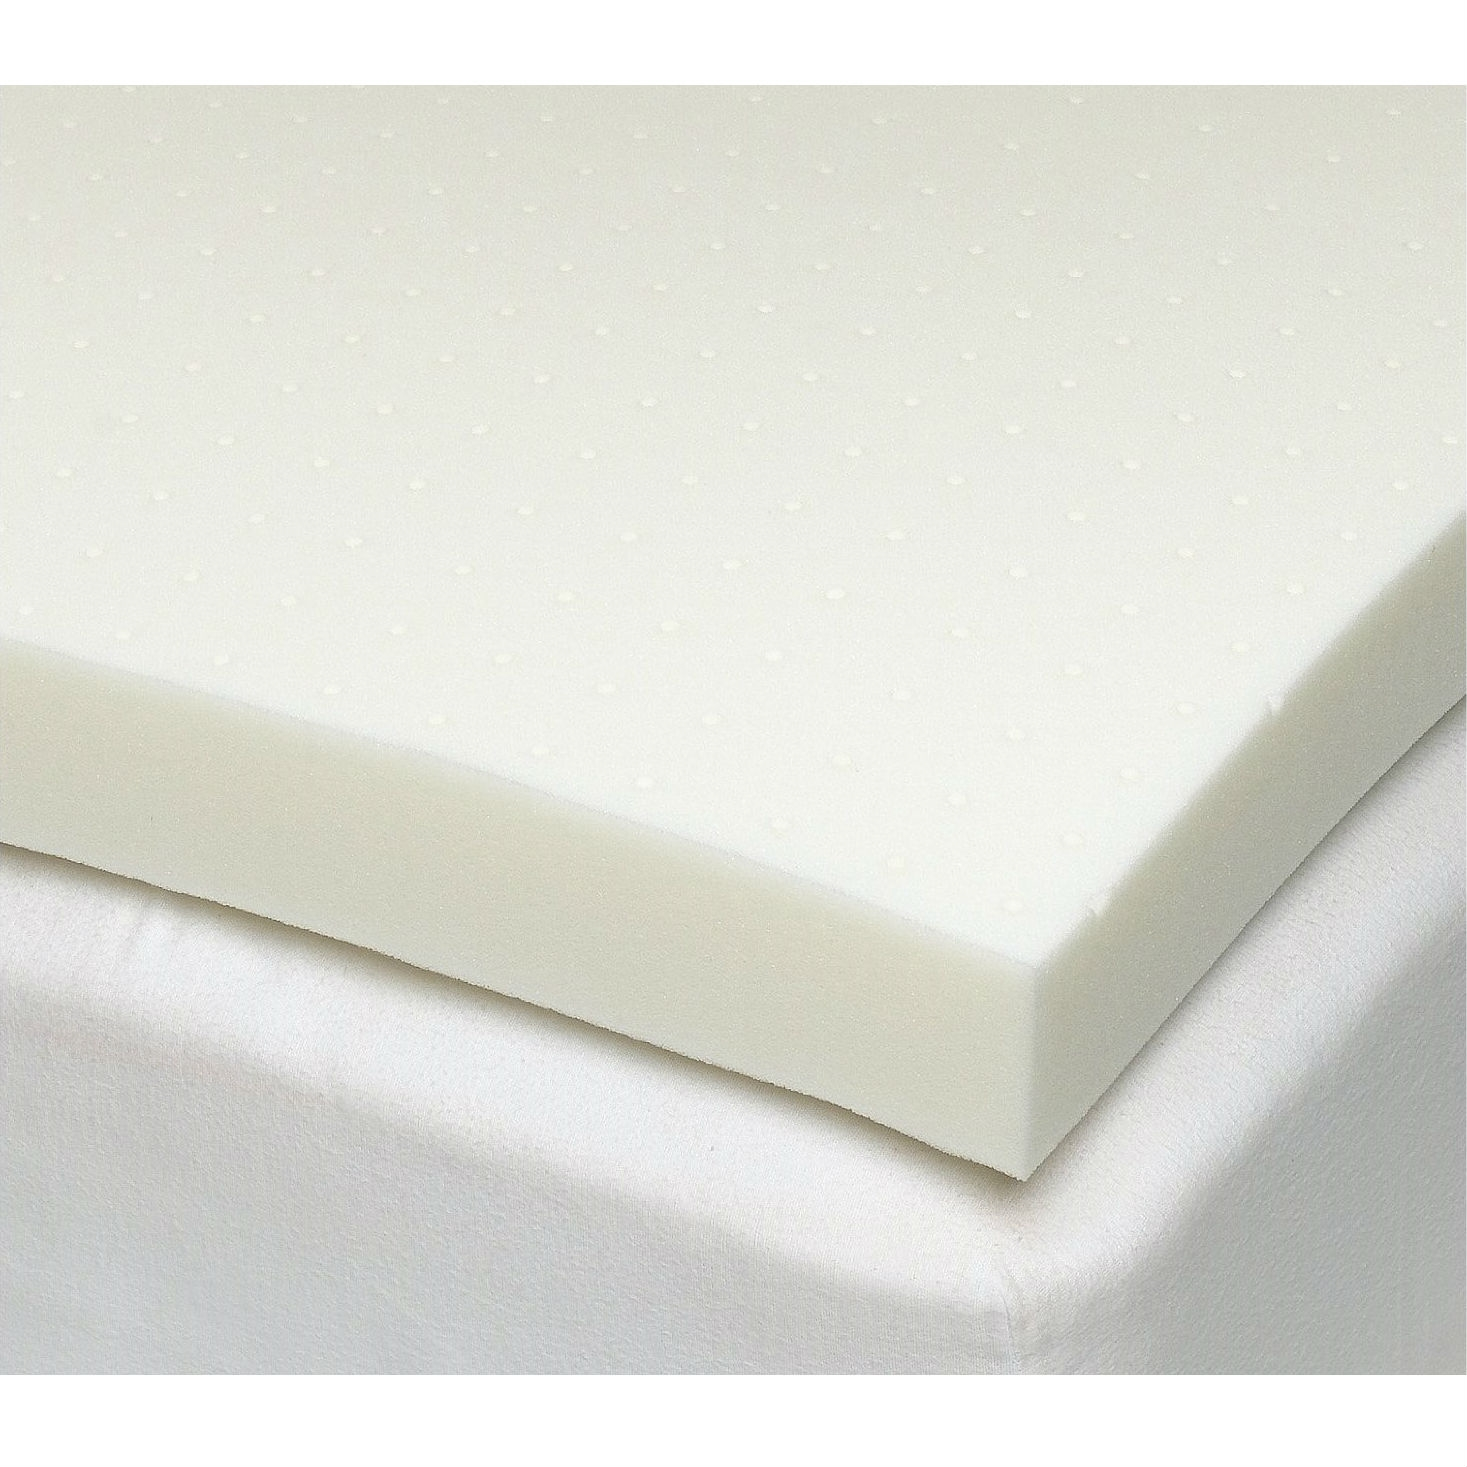 California King Size 3 Inch Thick Ventilated Memory Foam Mattress